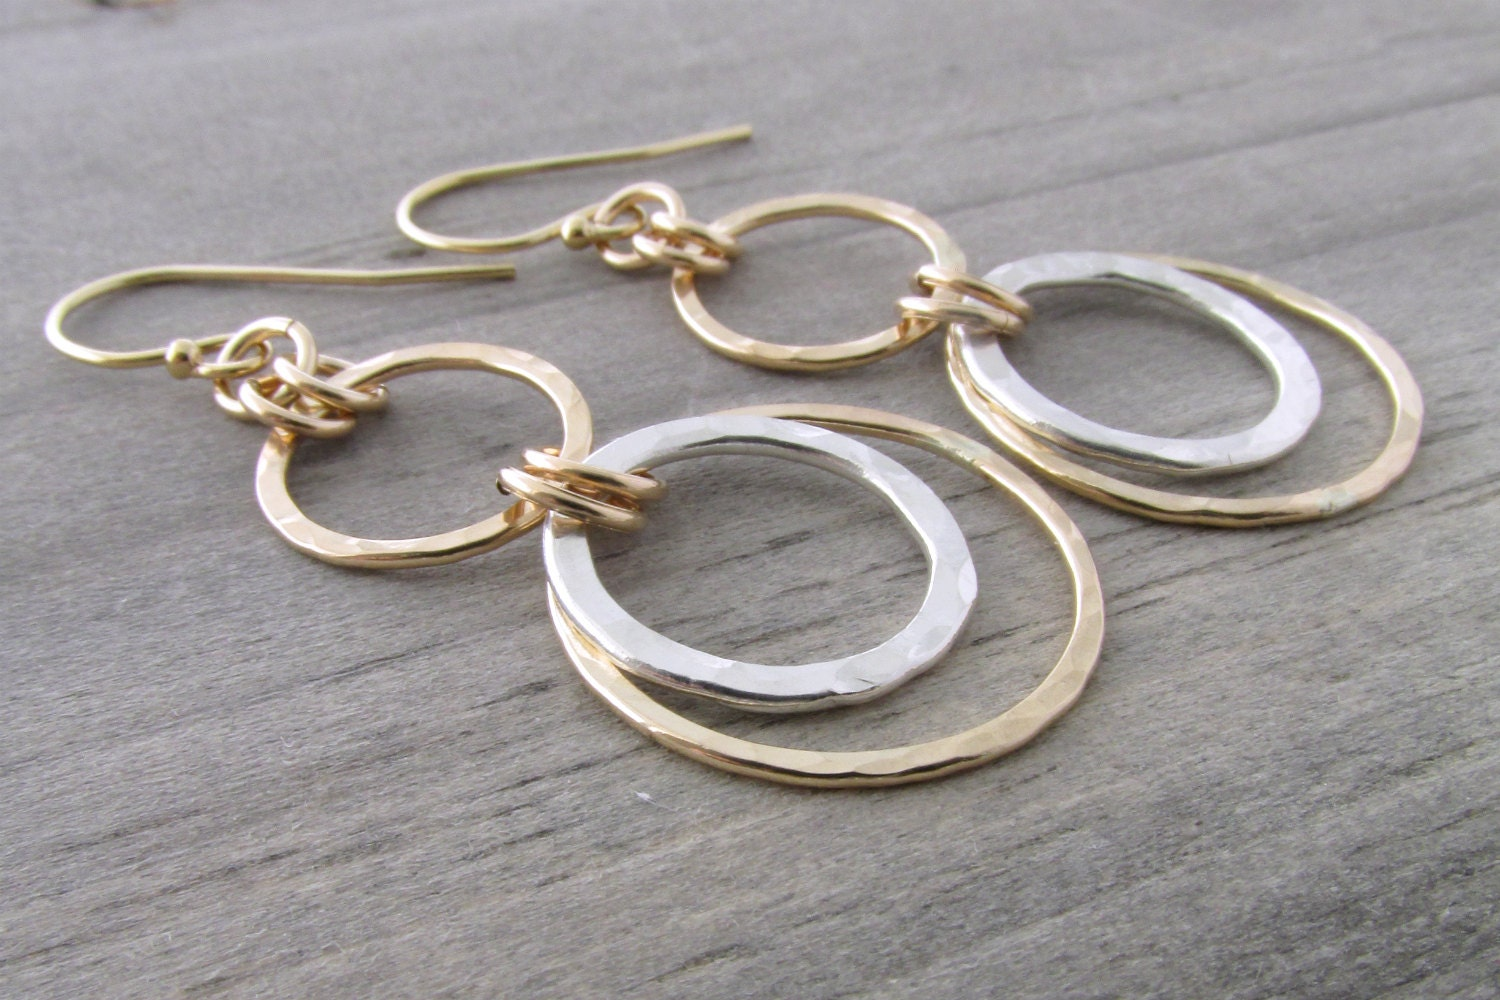 Mixed metal earrings gold and silver dangle